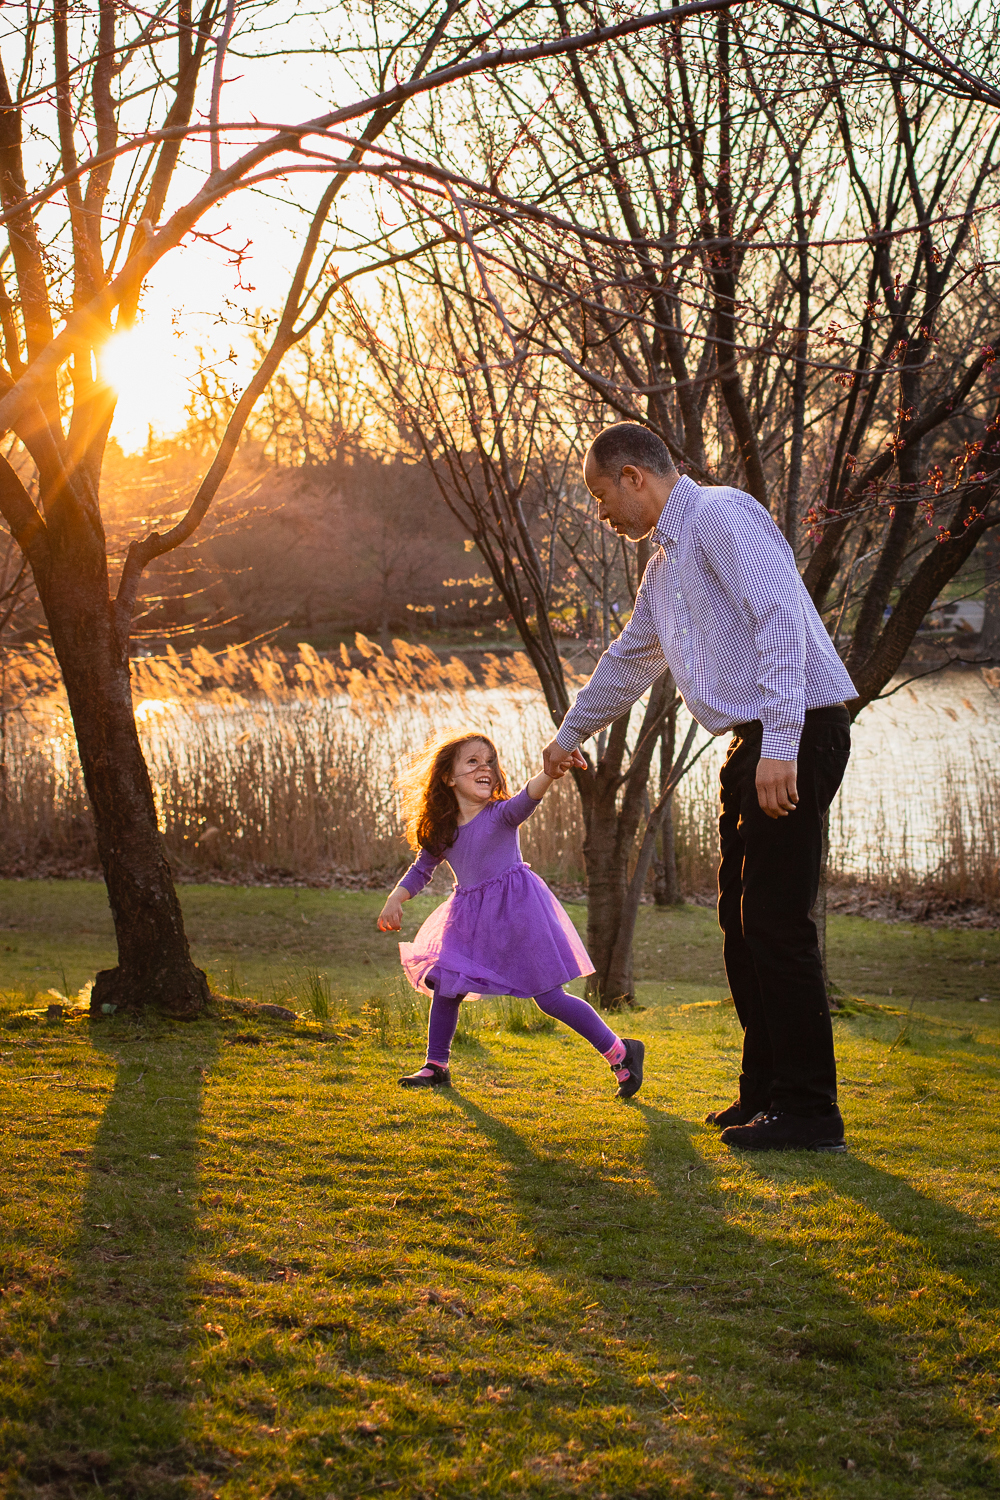 playful spring time father daughter lifestyle photo